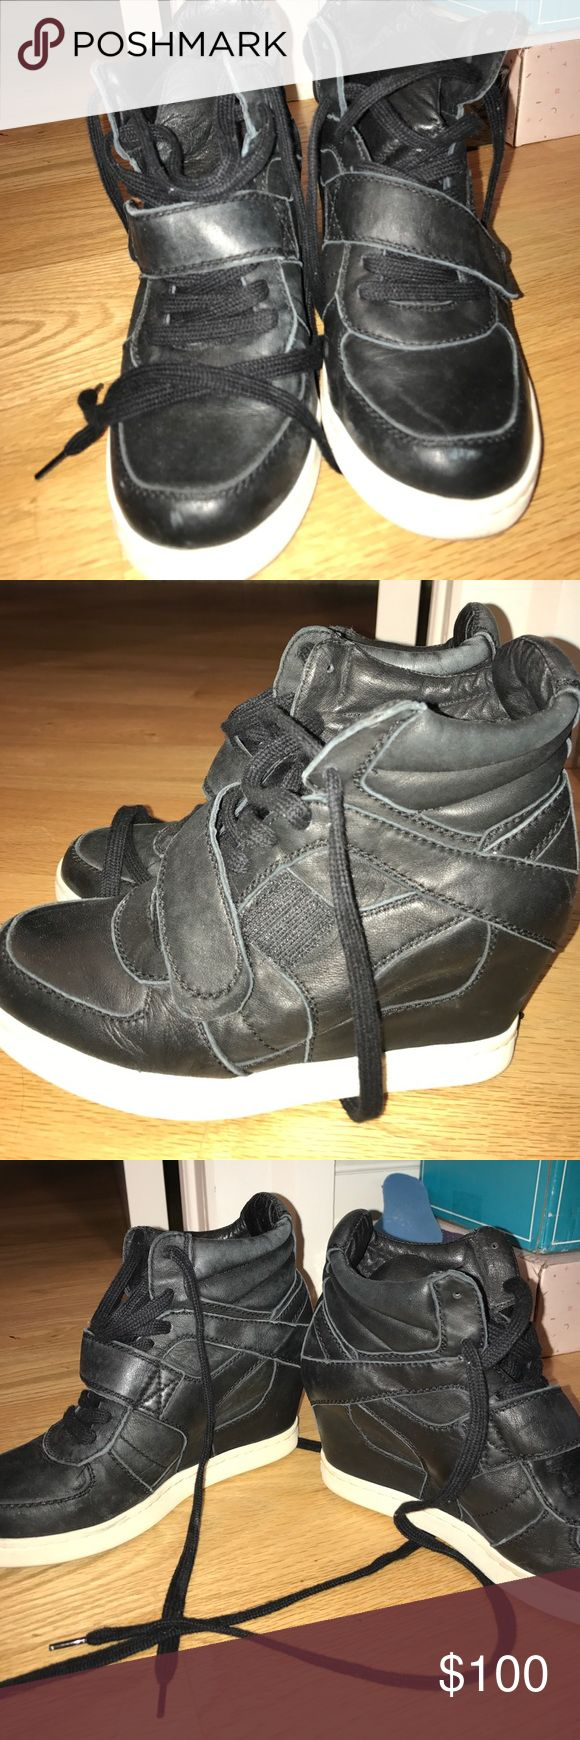 Selling this Ash sneaker wedges on Poshmark! My username is: carlamiller. #shopmycloset #poshmark #fashion #shopping #style #forsale #Ash #Shoes